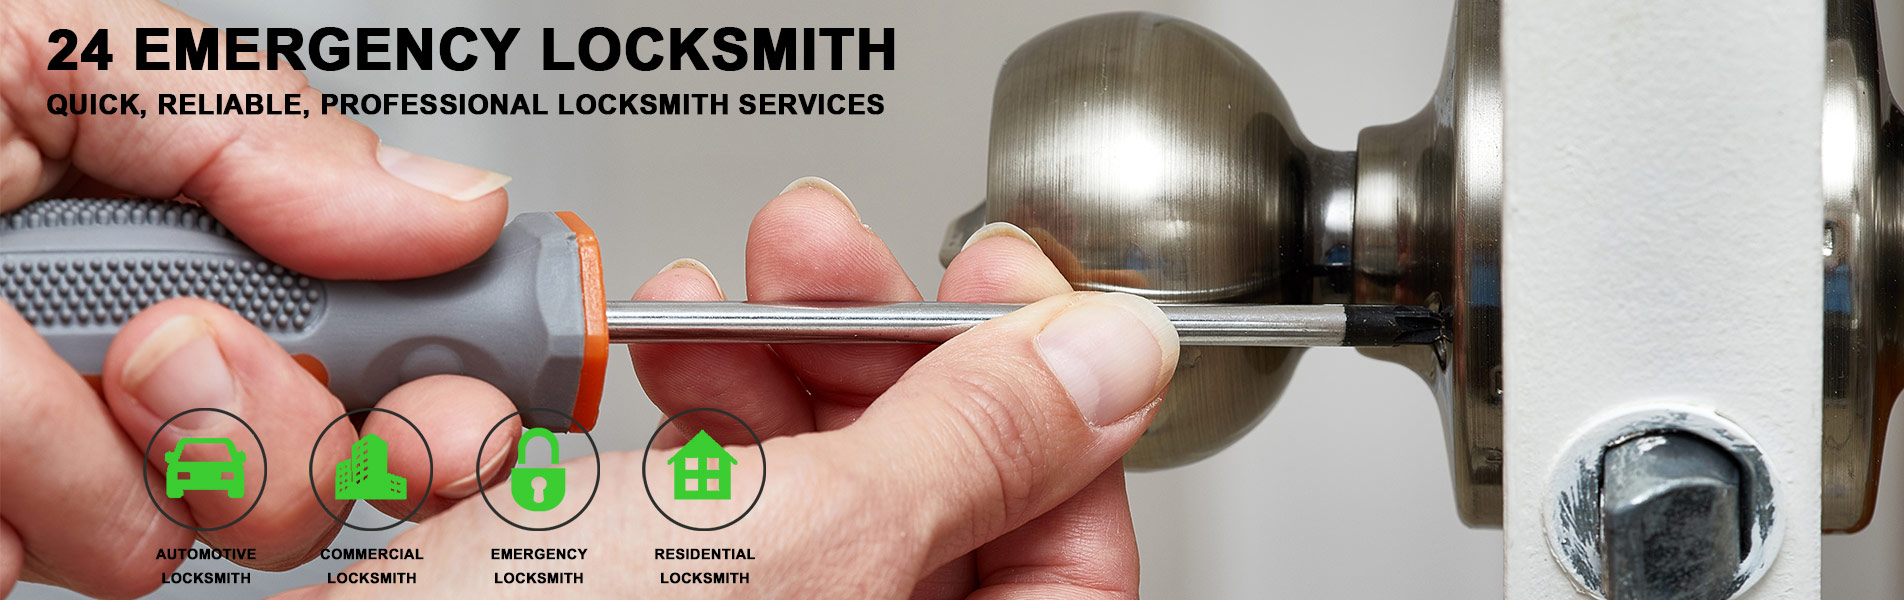 Expert Locksmith Services Miami, FL 305-894-5987